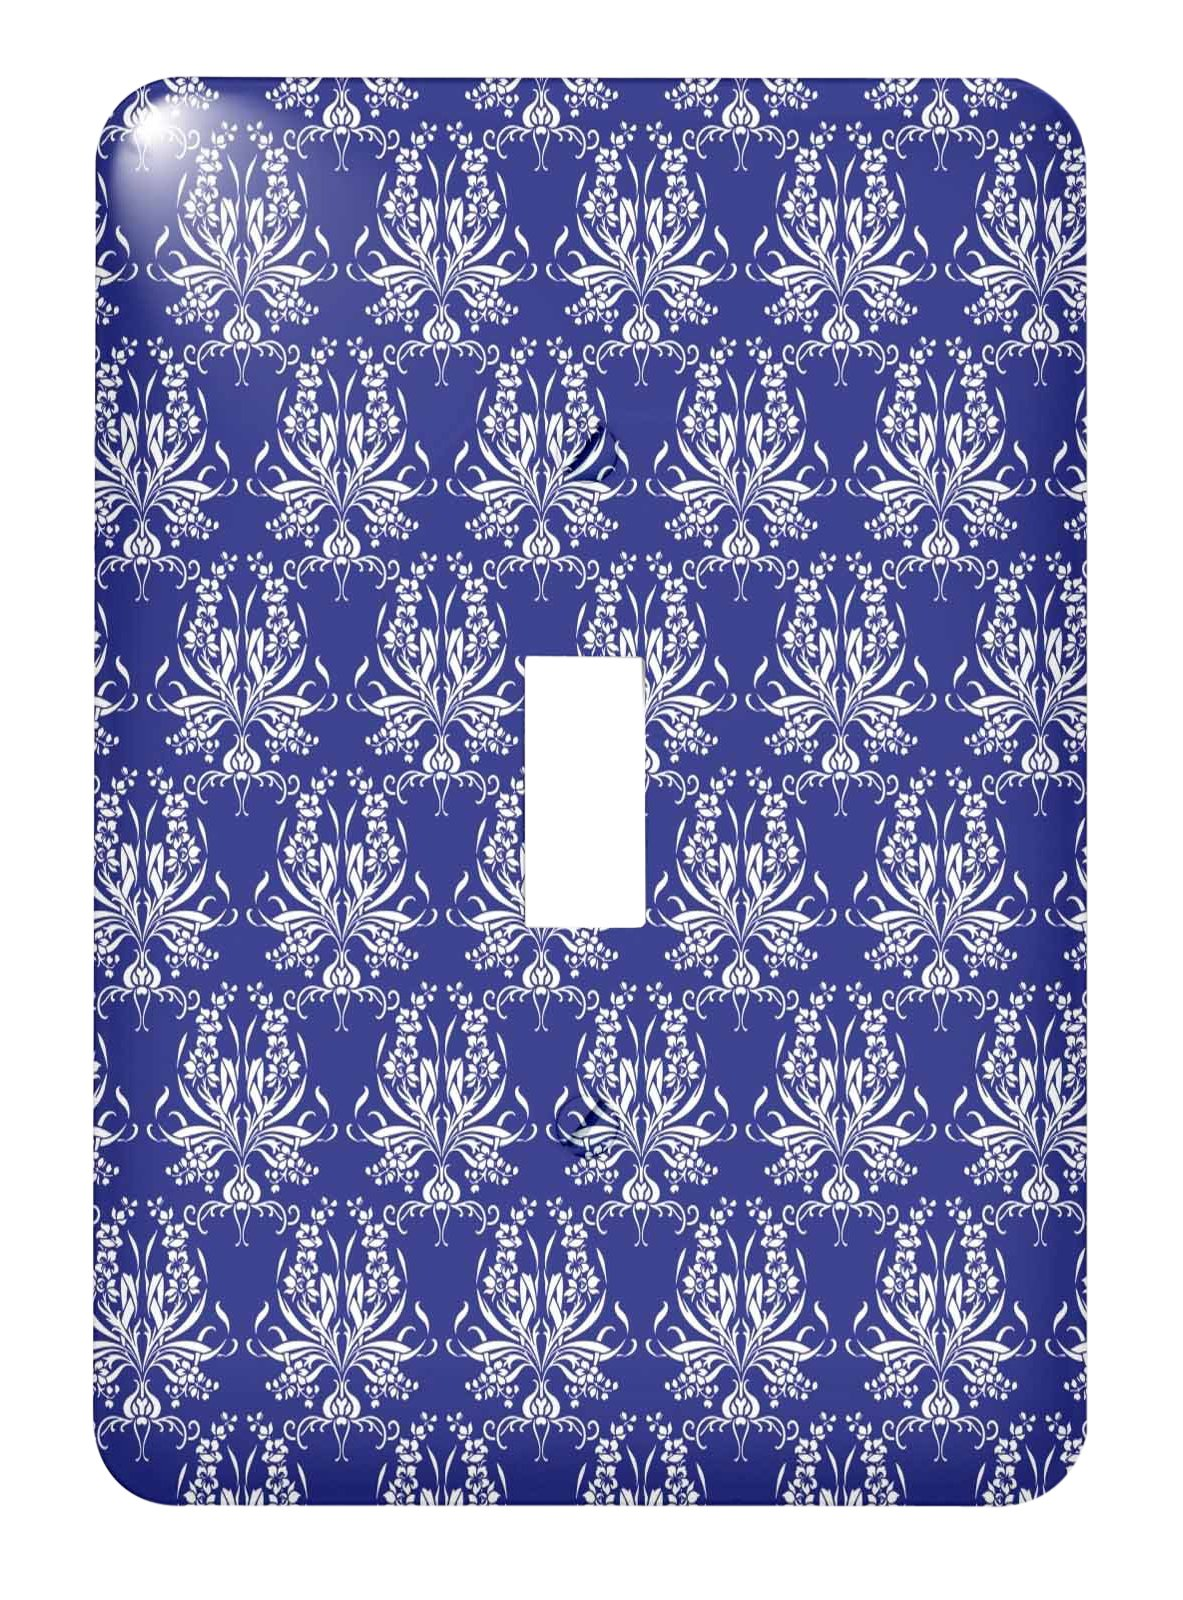 3dRose lsp_219107_1 Gorgeous French Country Style Floral Pattern In White and Blue - Single Toggle Switch